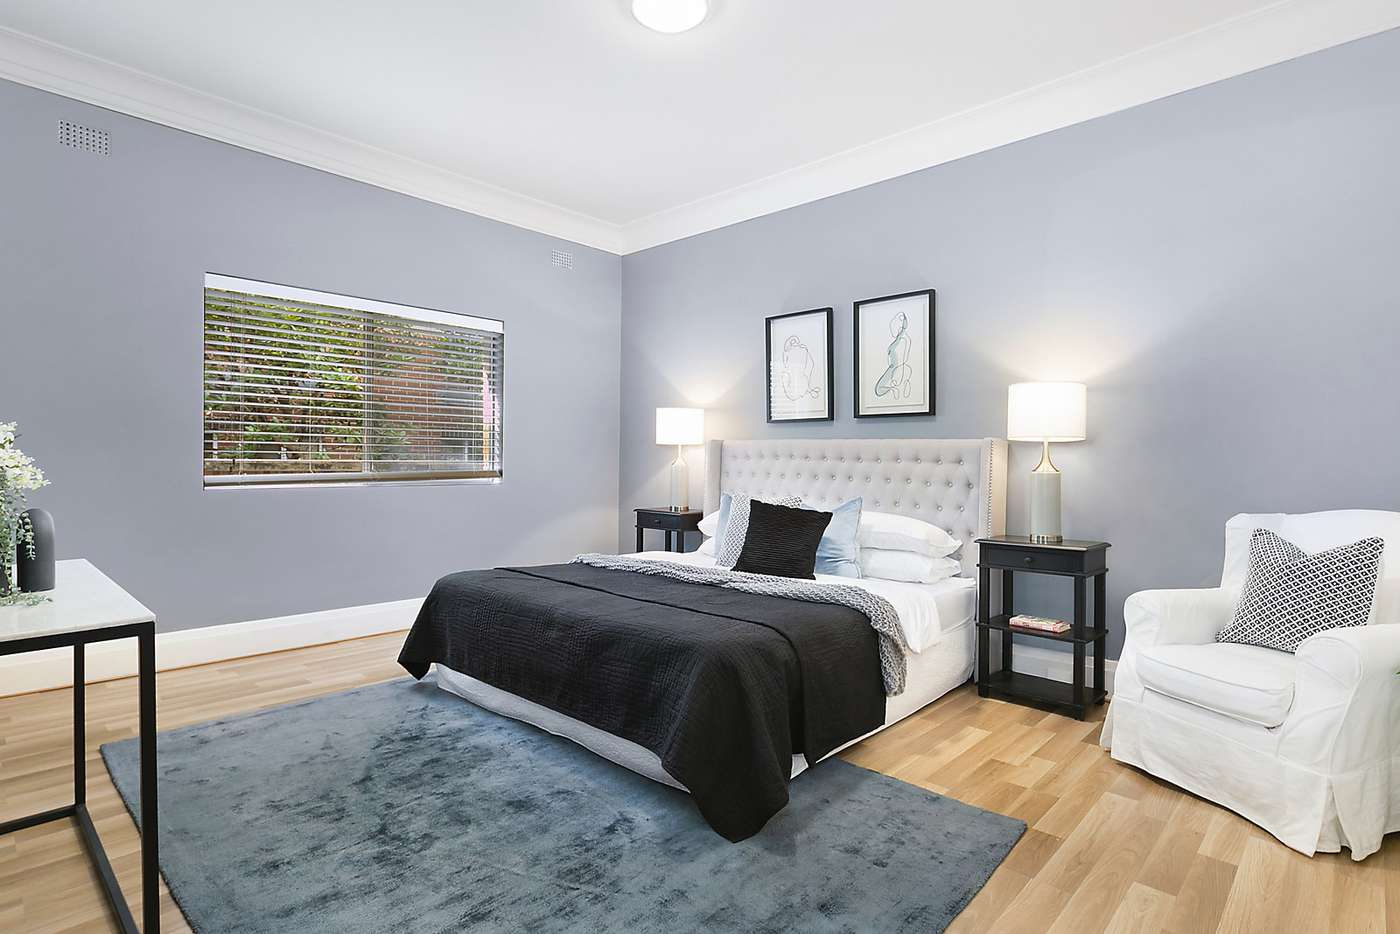 Sixth view of Homely house listing, 69 Sydney Street, Willoughby NSW 2068